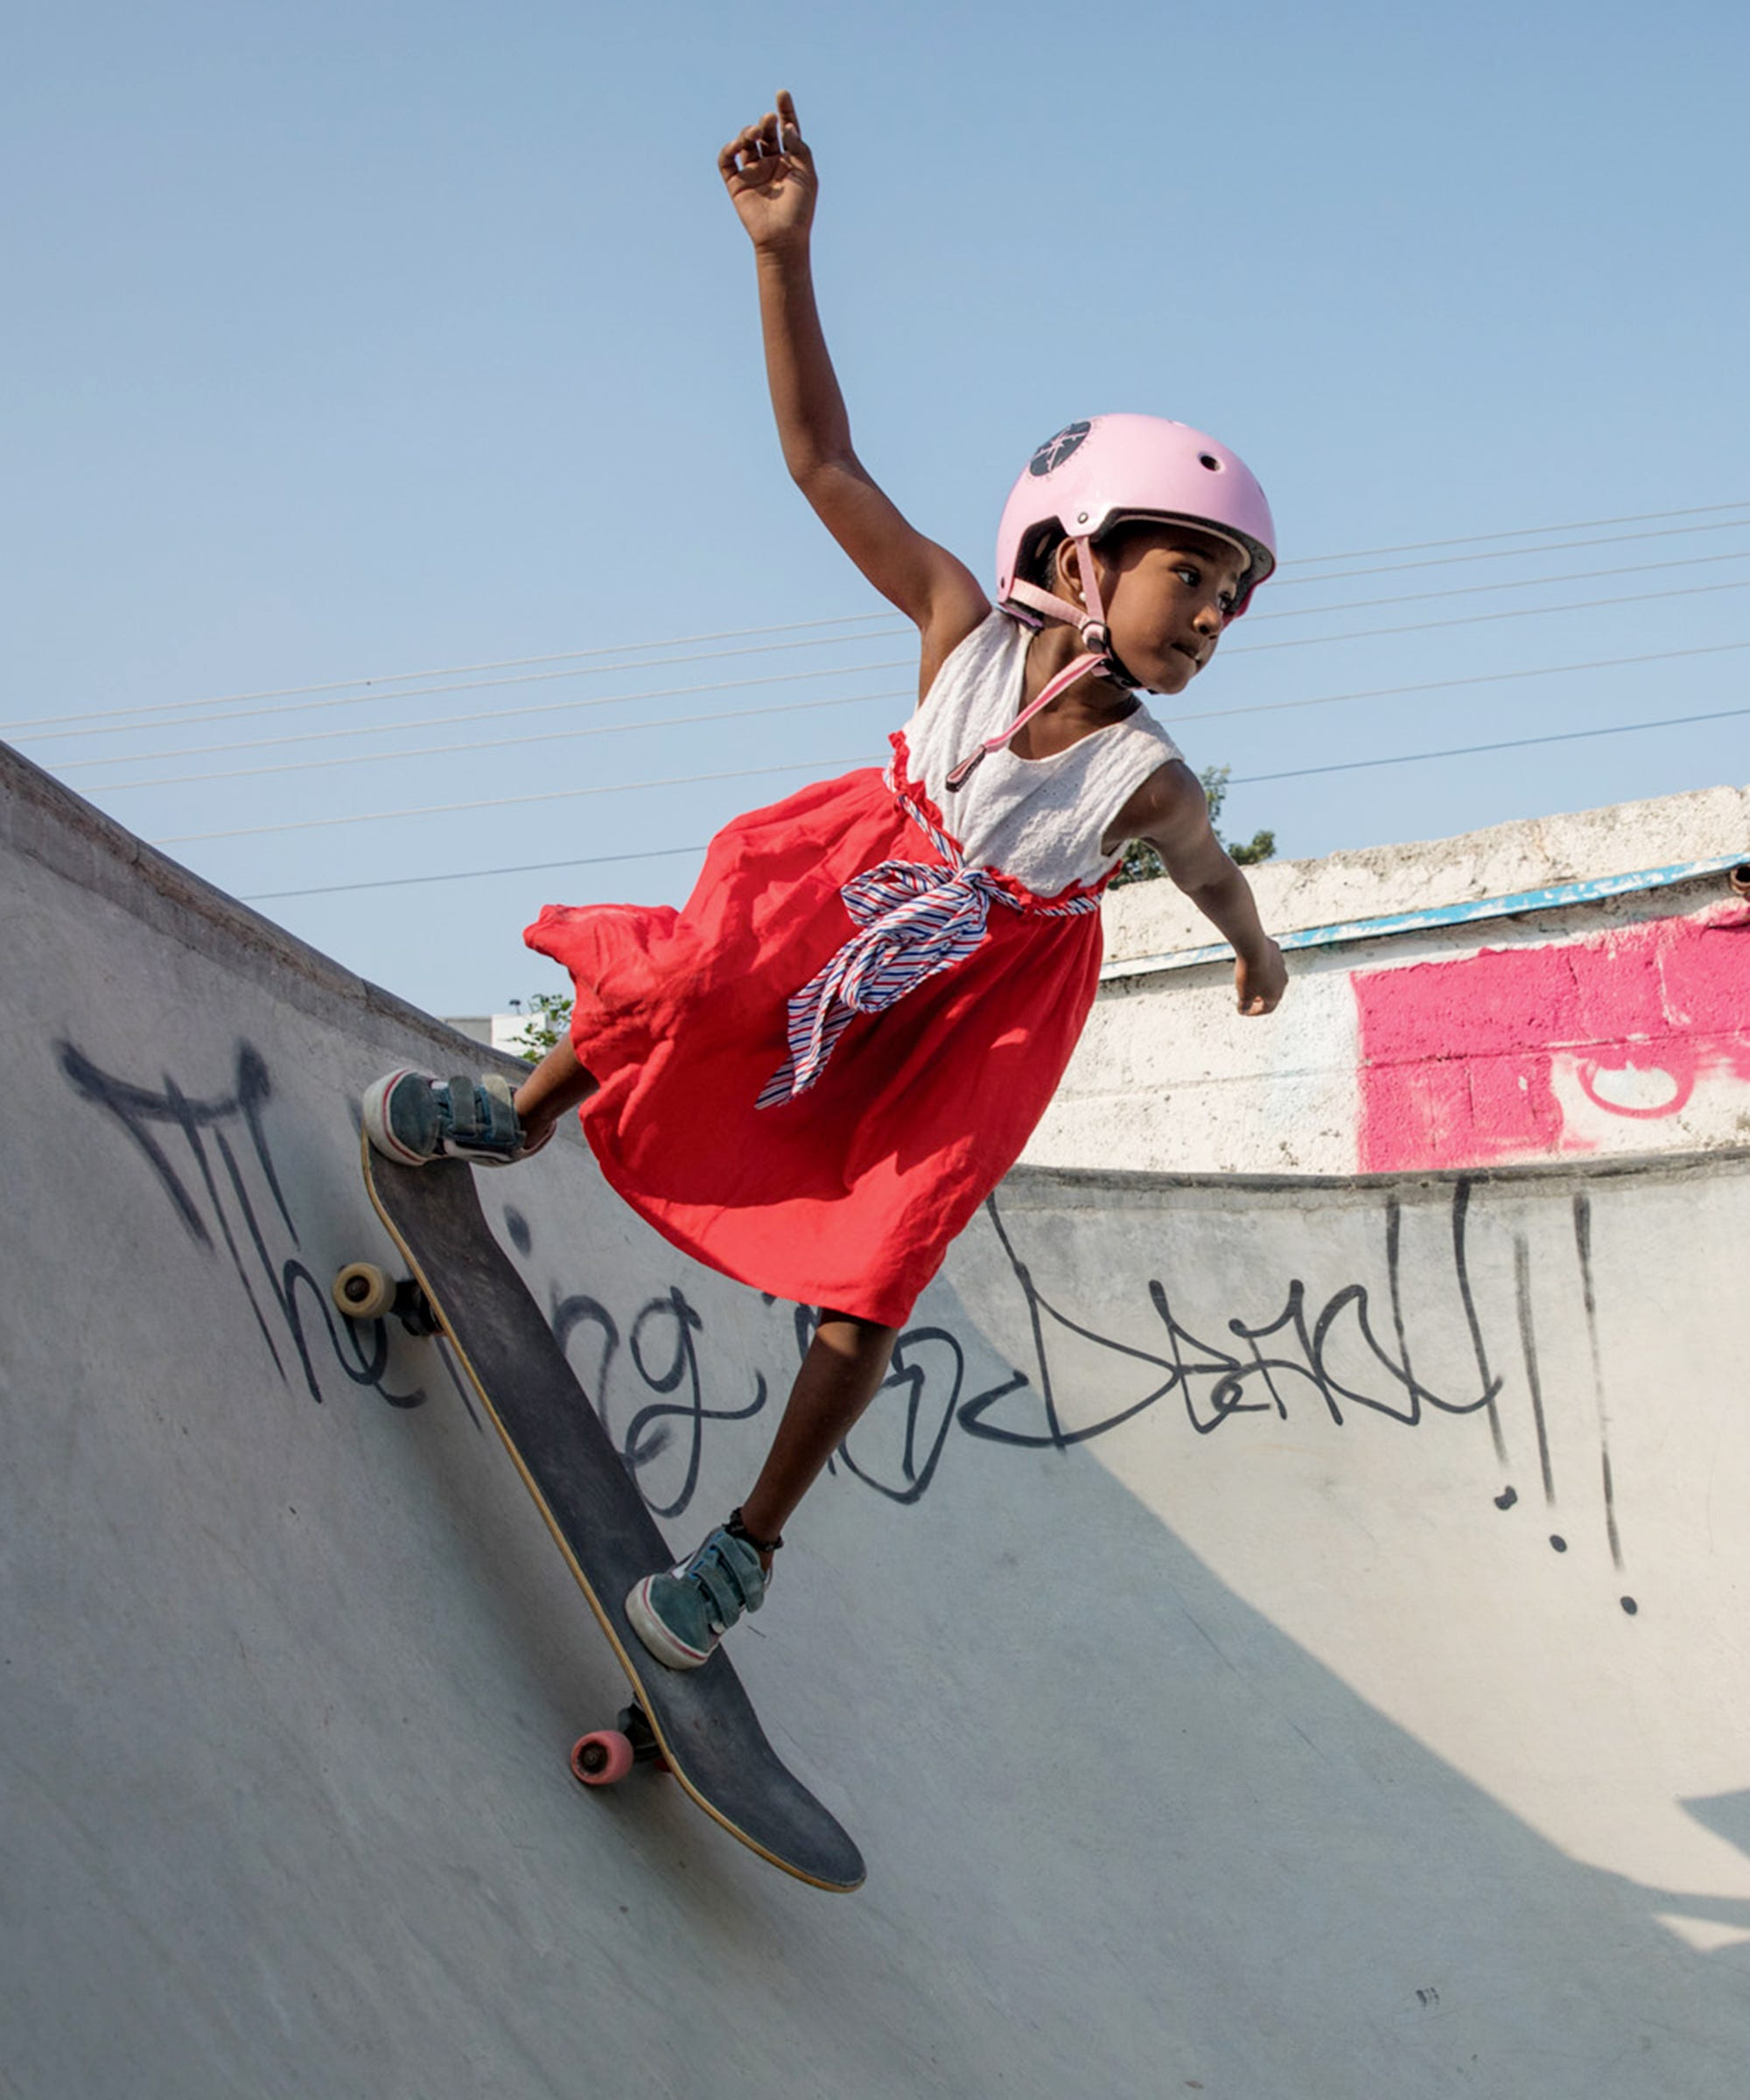 a820b5352f Vans New Campaign Will Create Women SkateParks Globally